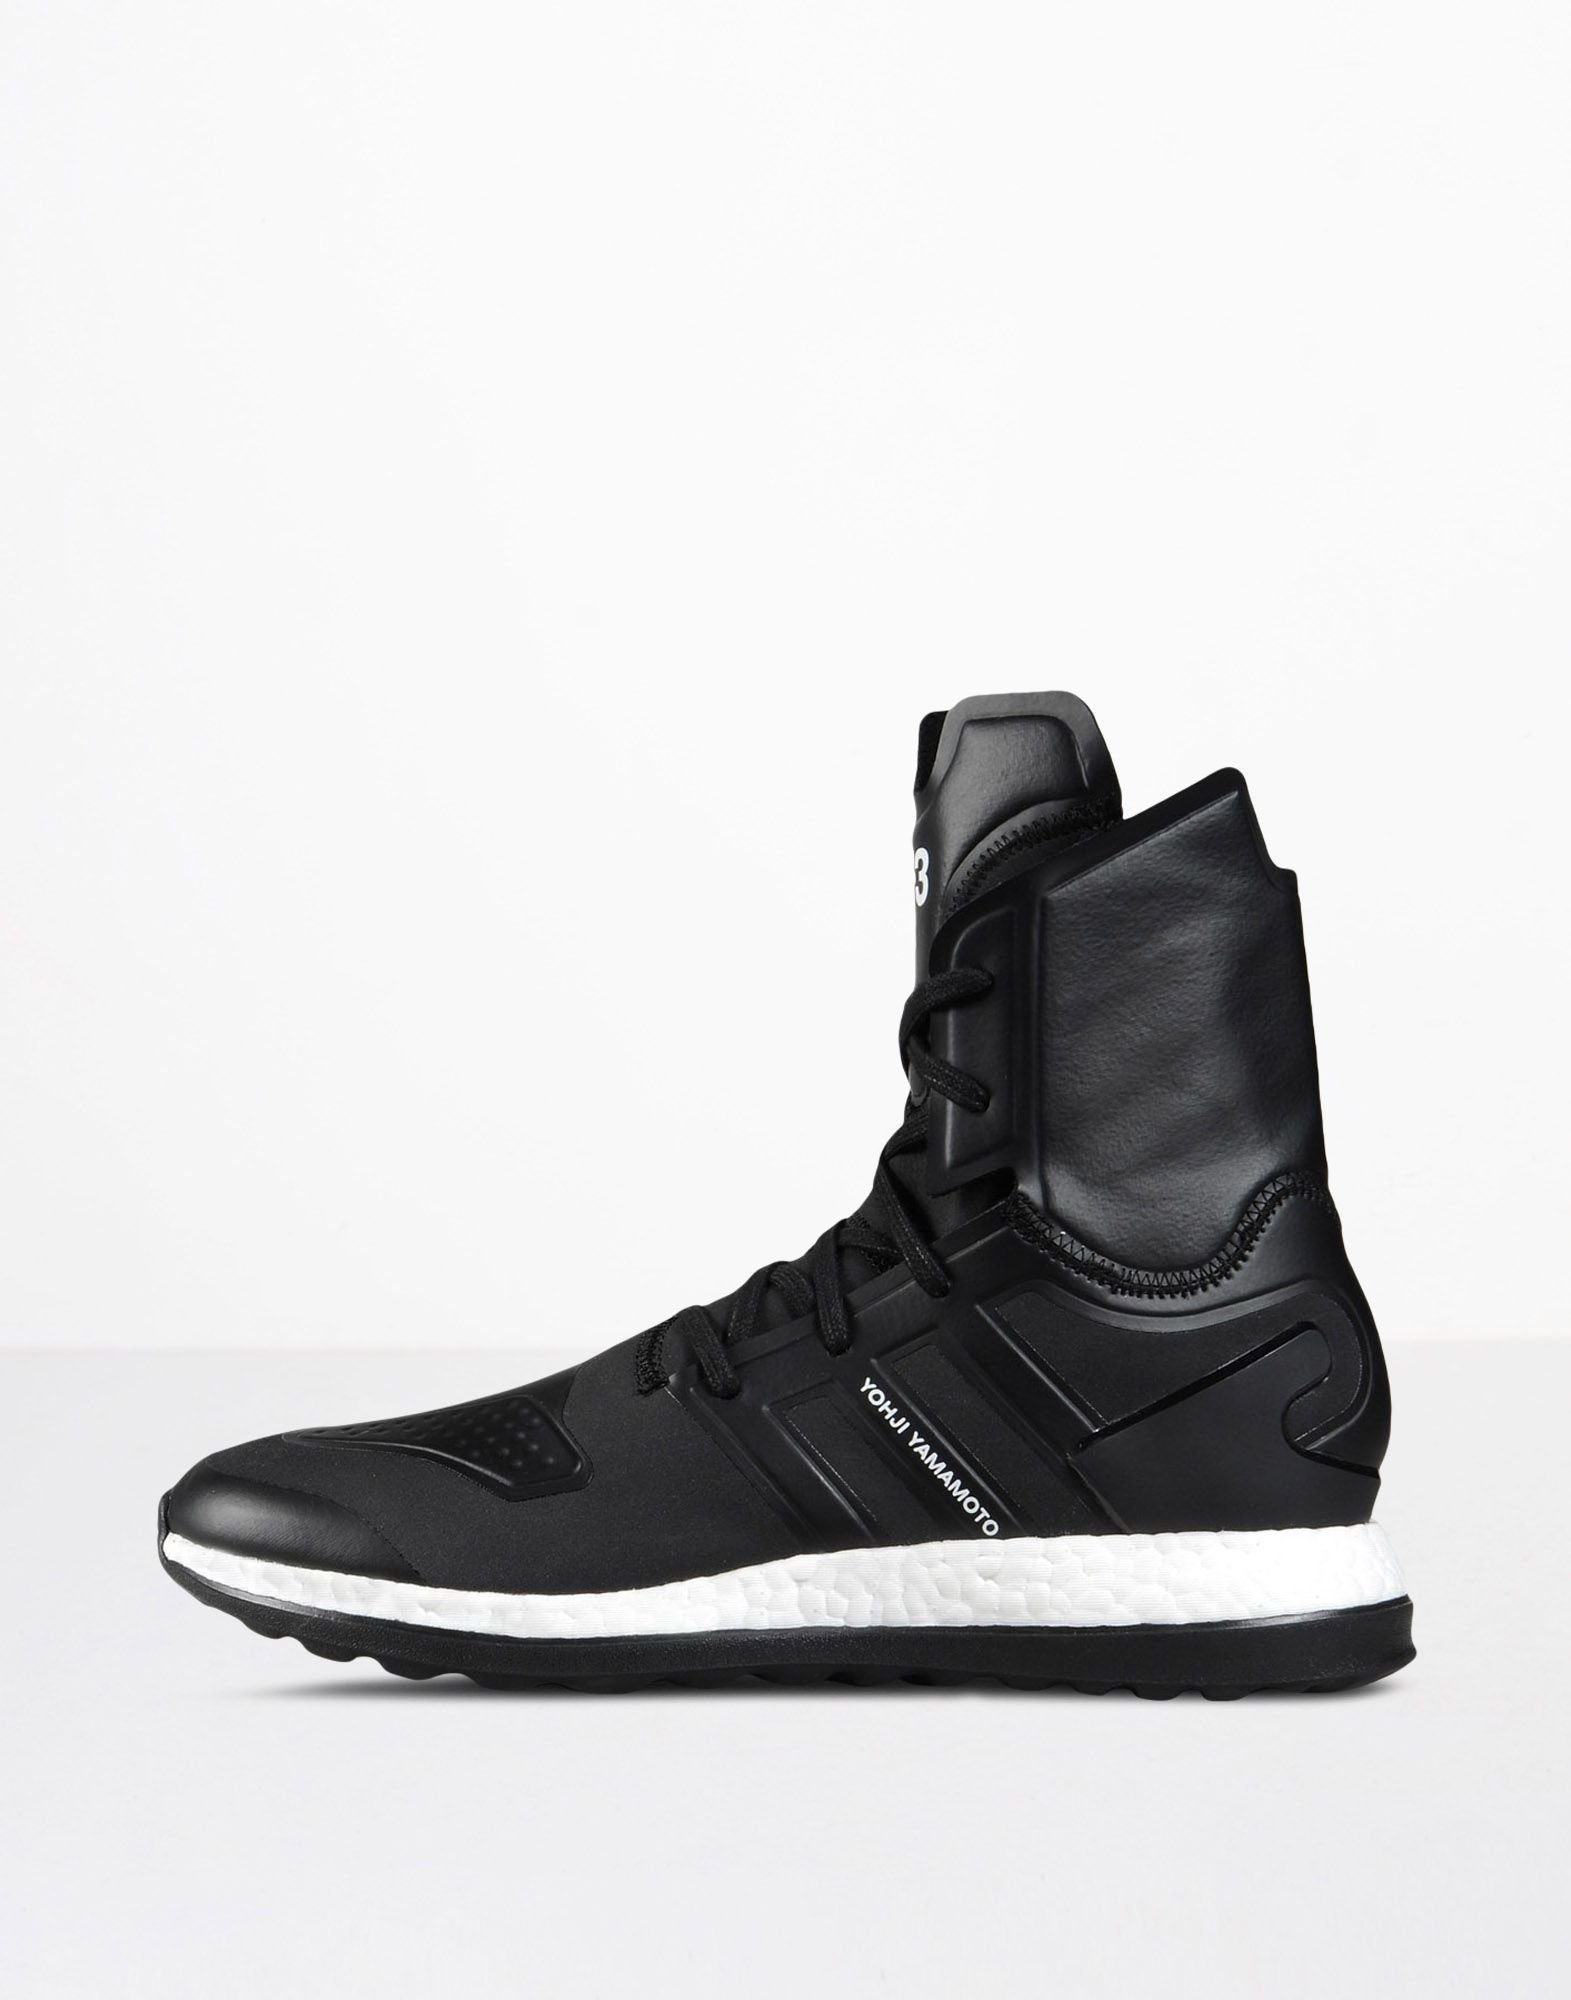 ... Y-3 Y-3 PUREBOOST ZG HIGH High-top sneakers Man ... f73d8118fa3b